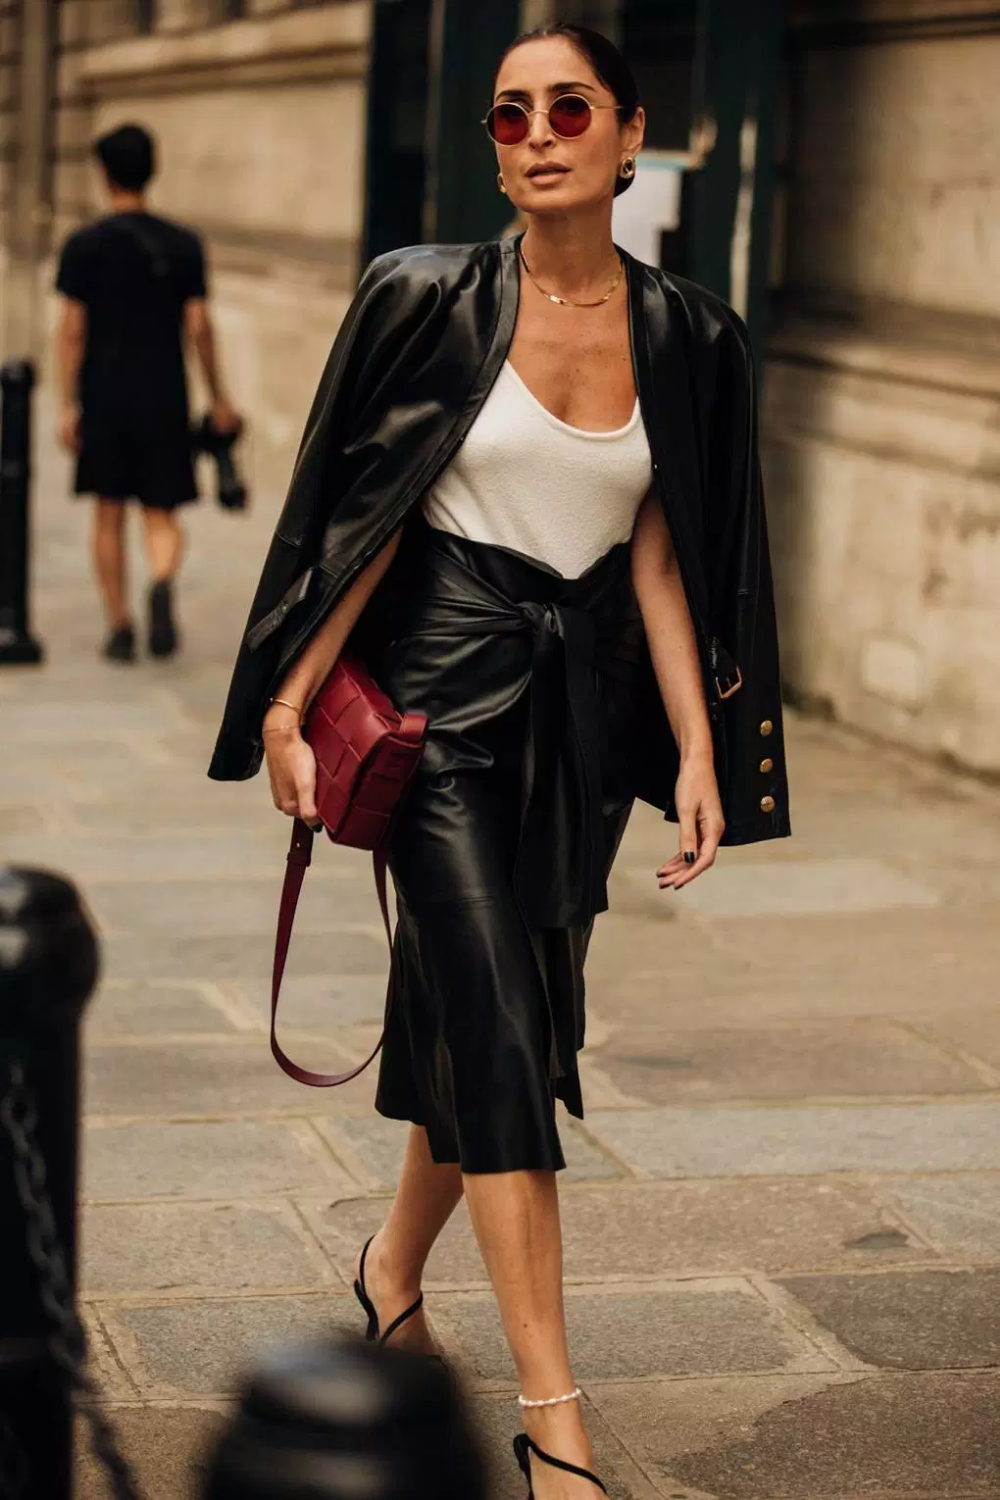 Chic Street Style Looks From Couture Fashion Week That You Can Wear All Summer